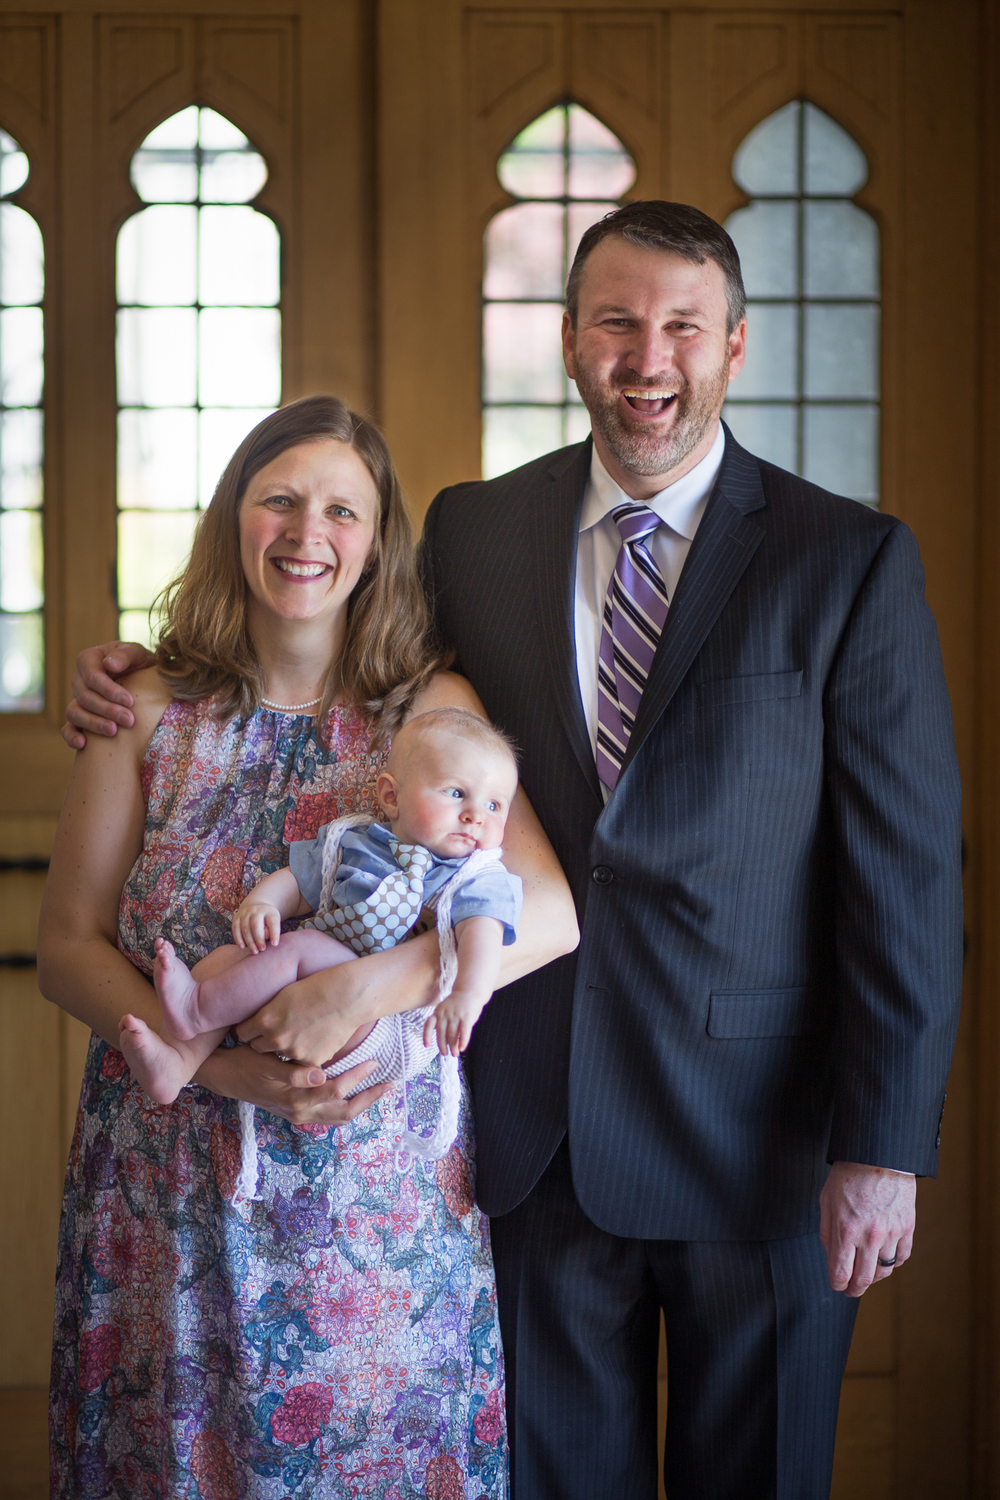 Teddy baptism (May 2015)